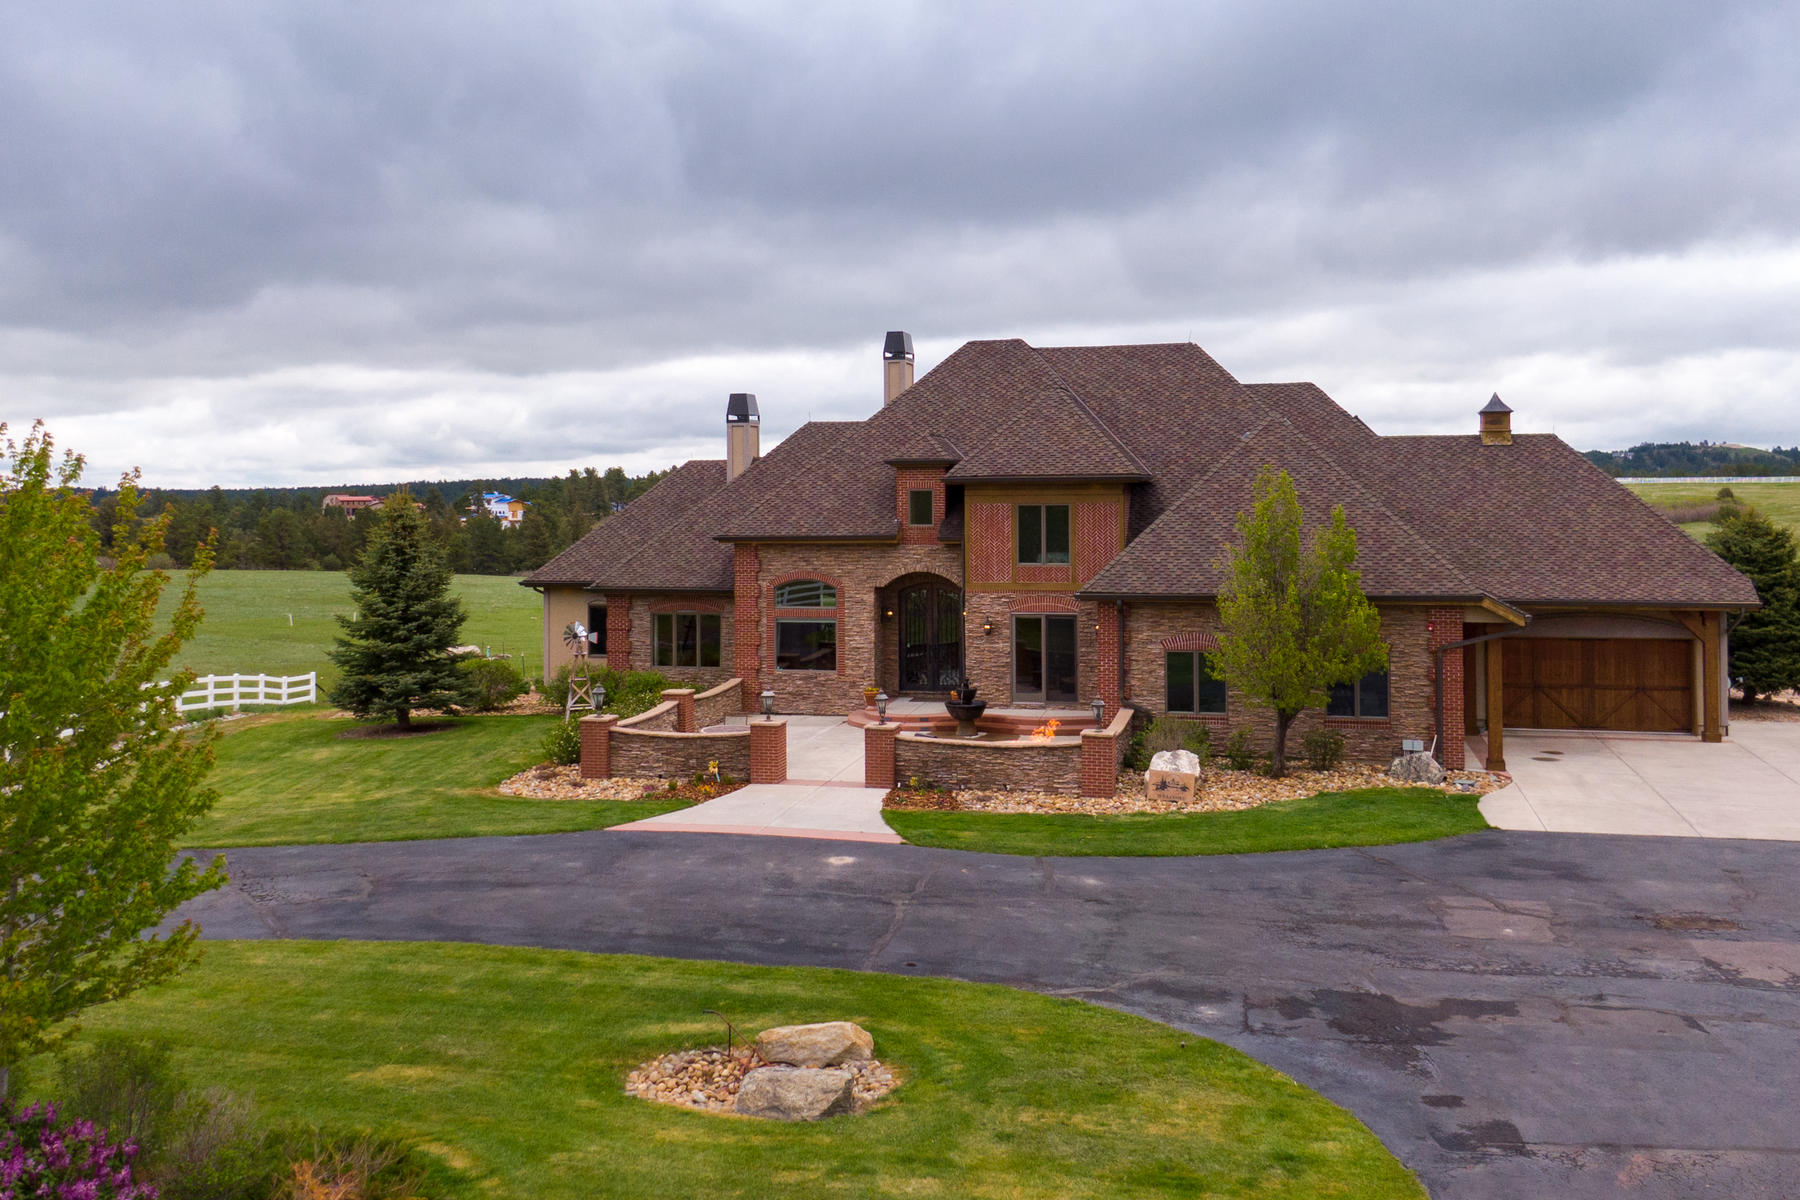 Single Family Homes for Active at This custom estate sits on 35 wide-open acres and boasts spectacular views! 9415 Arabian Run Franktown, Colorado 80116 United States